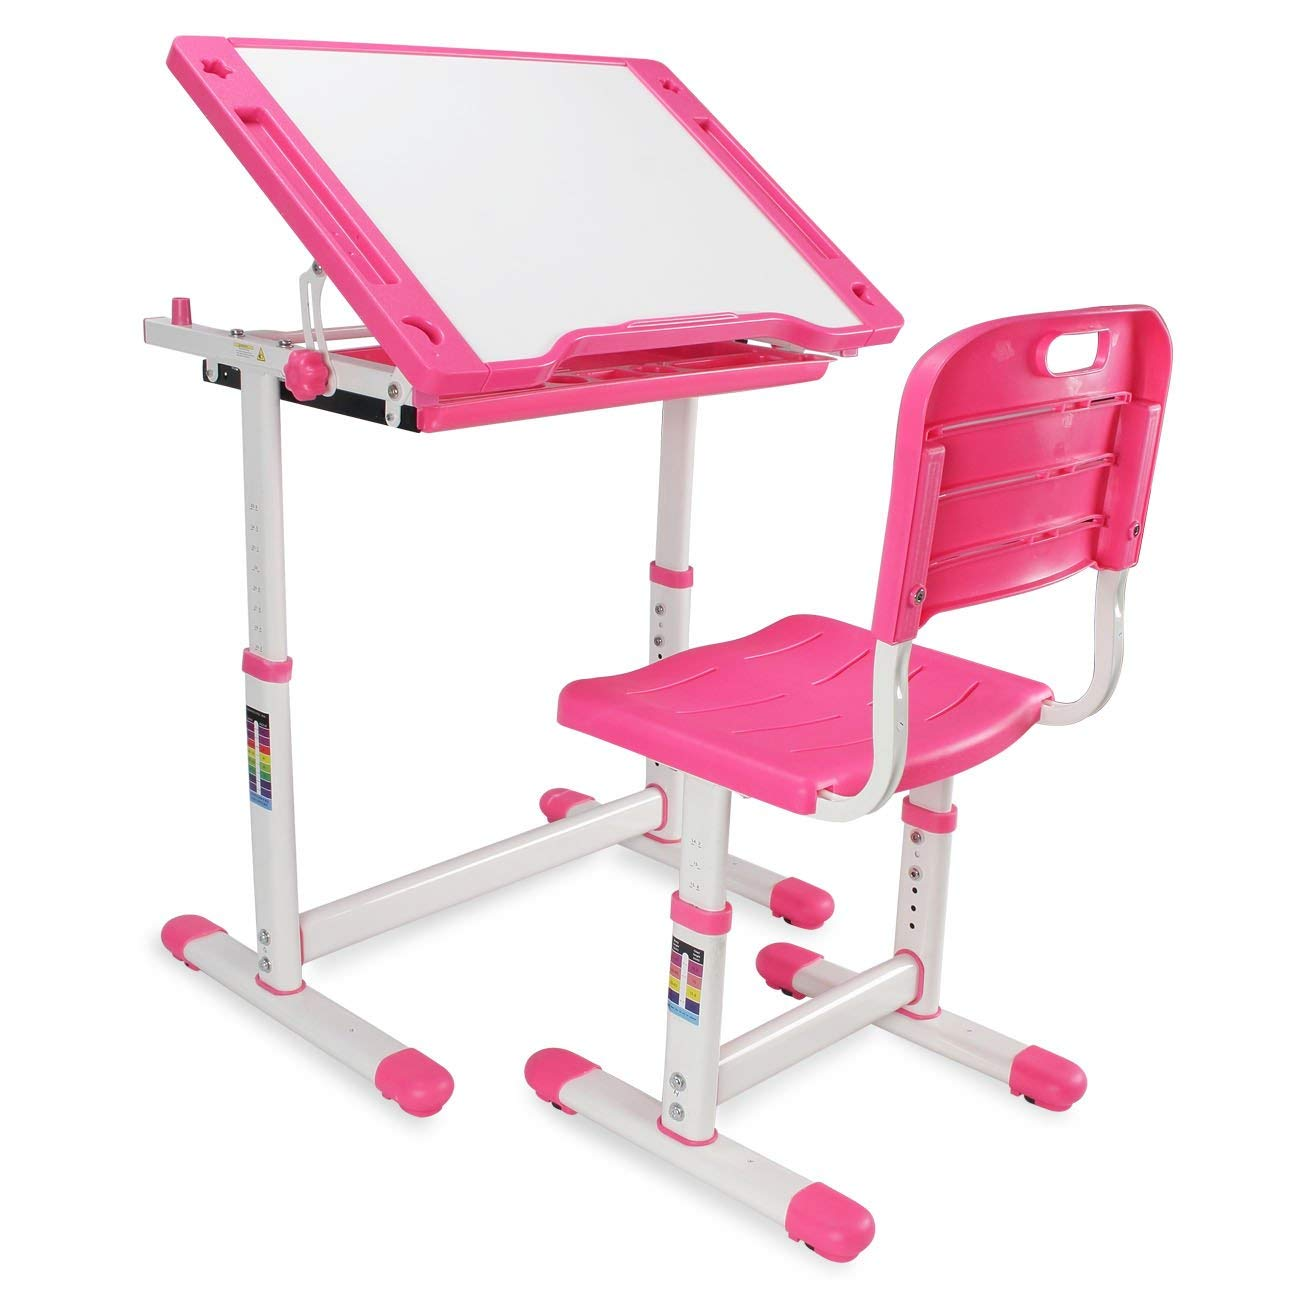 Kidzone Adjustable Children's Desk & Chair Set Kids Study Table Set Tiltable Desktop Height Work Station w/Pull Out Drawer, Pink